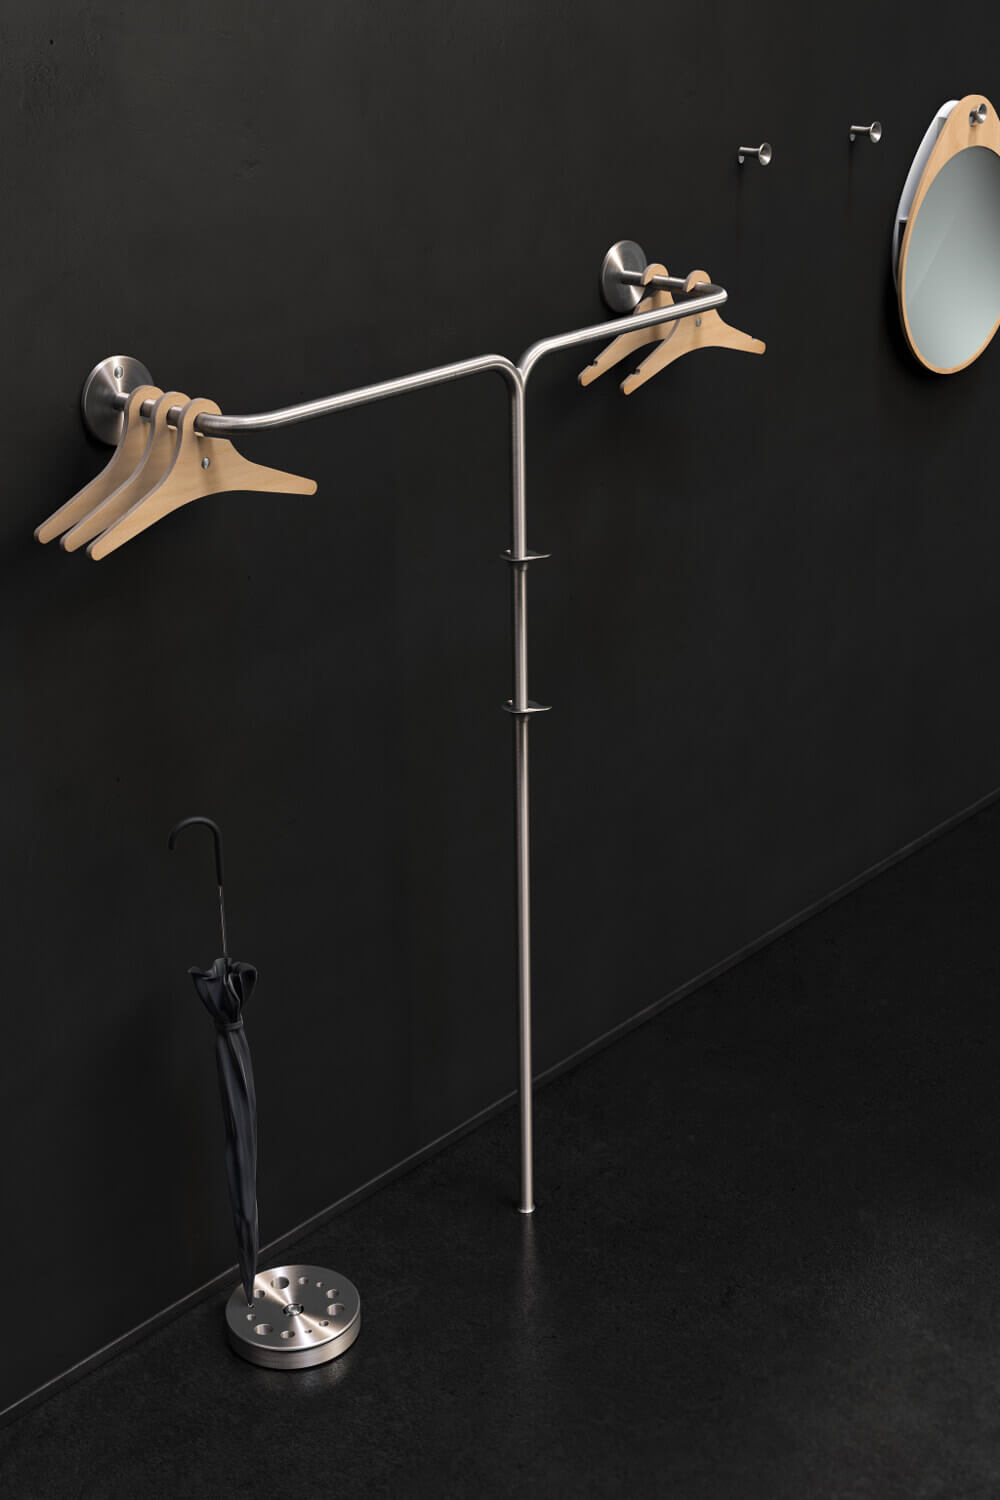 Fixed coat rack hybrid vine 4 stainless steel Teun Fleskens